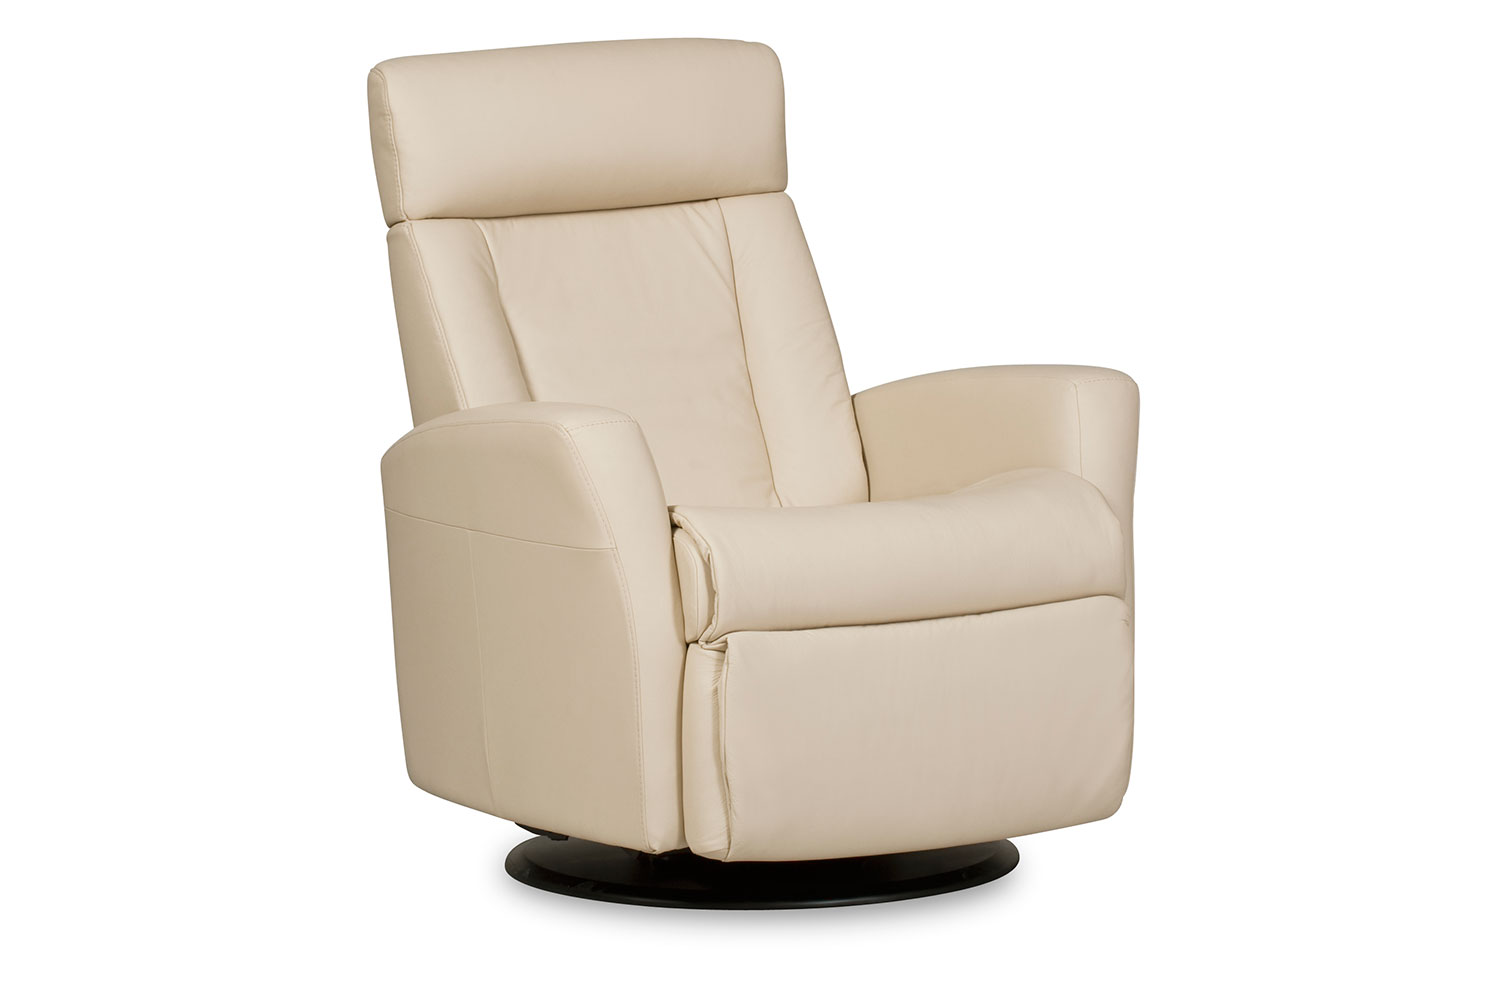 electric reclining chairs nz kids lawn walmart lotus recliner chair leather large trend img harvey